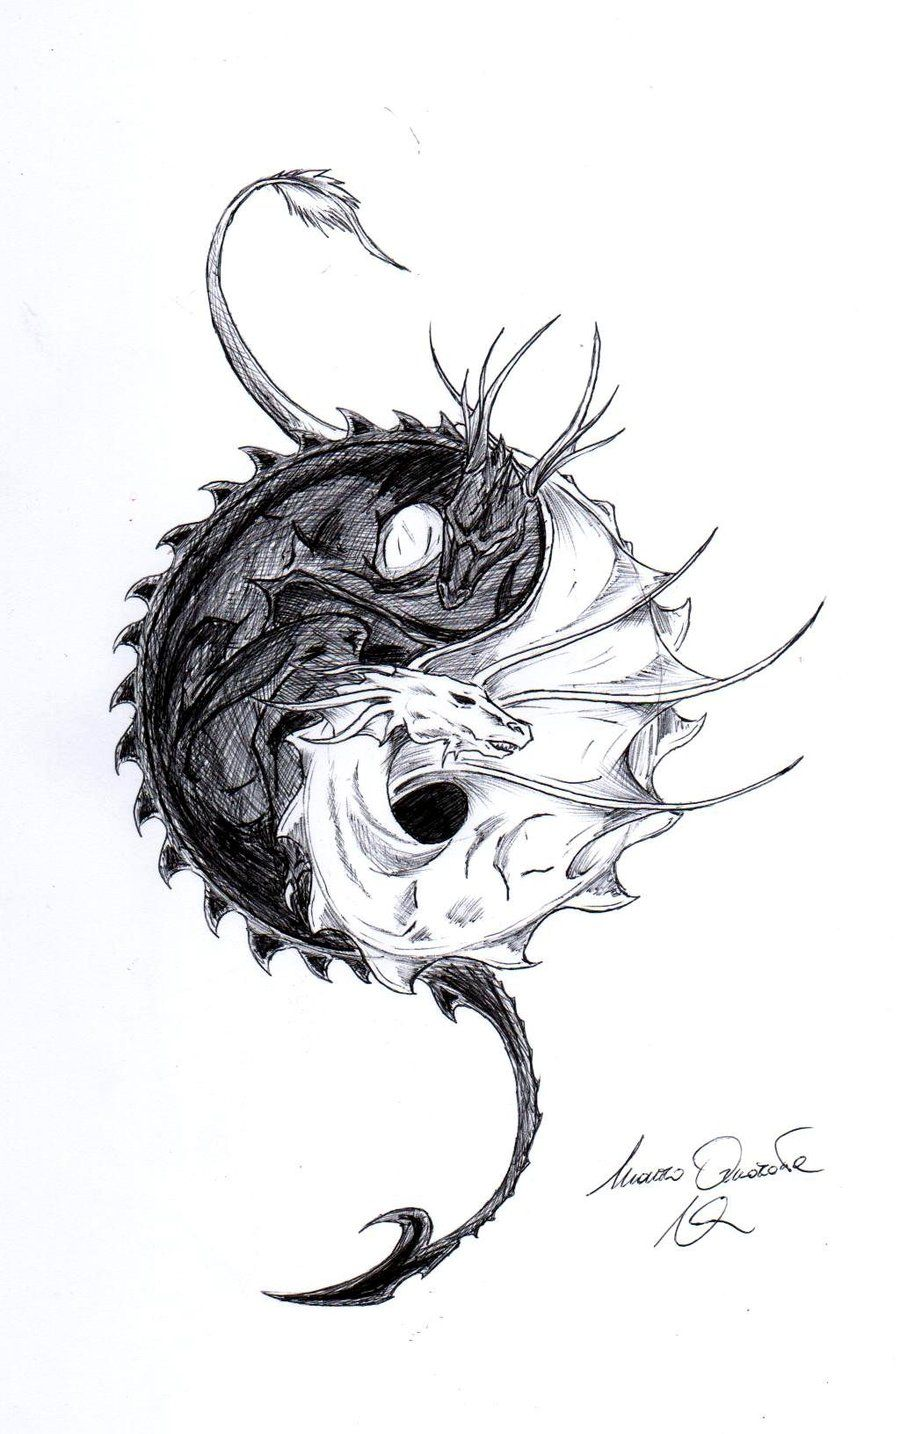 Yin and yang dragons by taylovestwilightiantart on yin and yang dragons by taylovestwilightiantart on deviantart dragons pinterest dragons deviantart and tattoo biocorpaavc